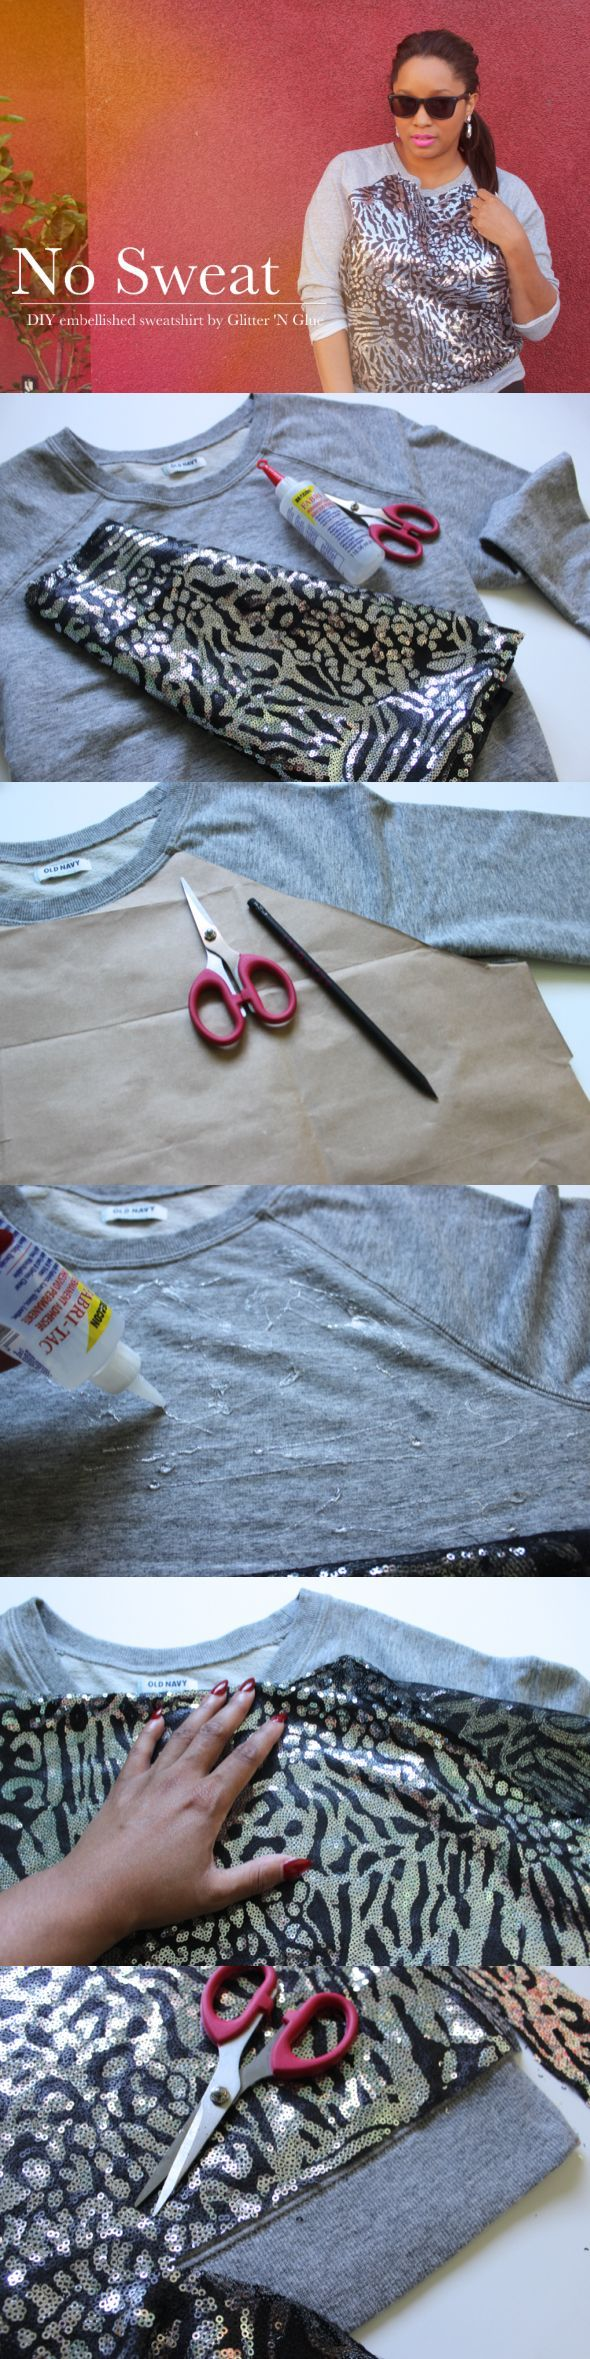 15 Easy No Sew Clothing Hacks That Anyone Can Do